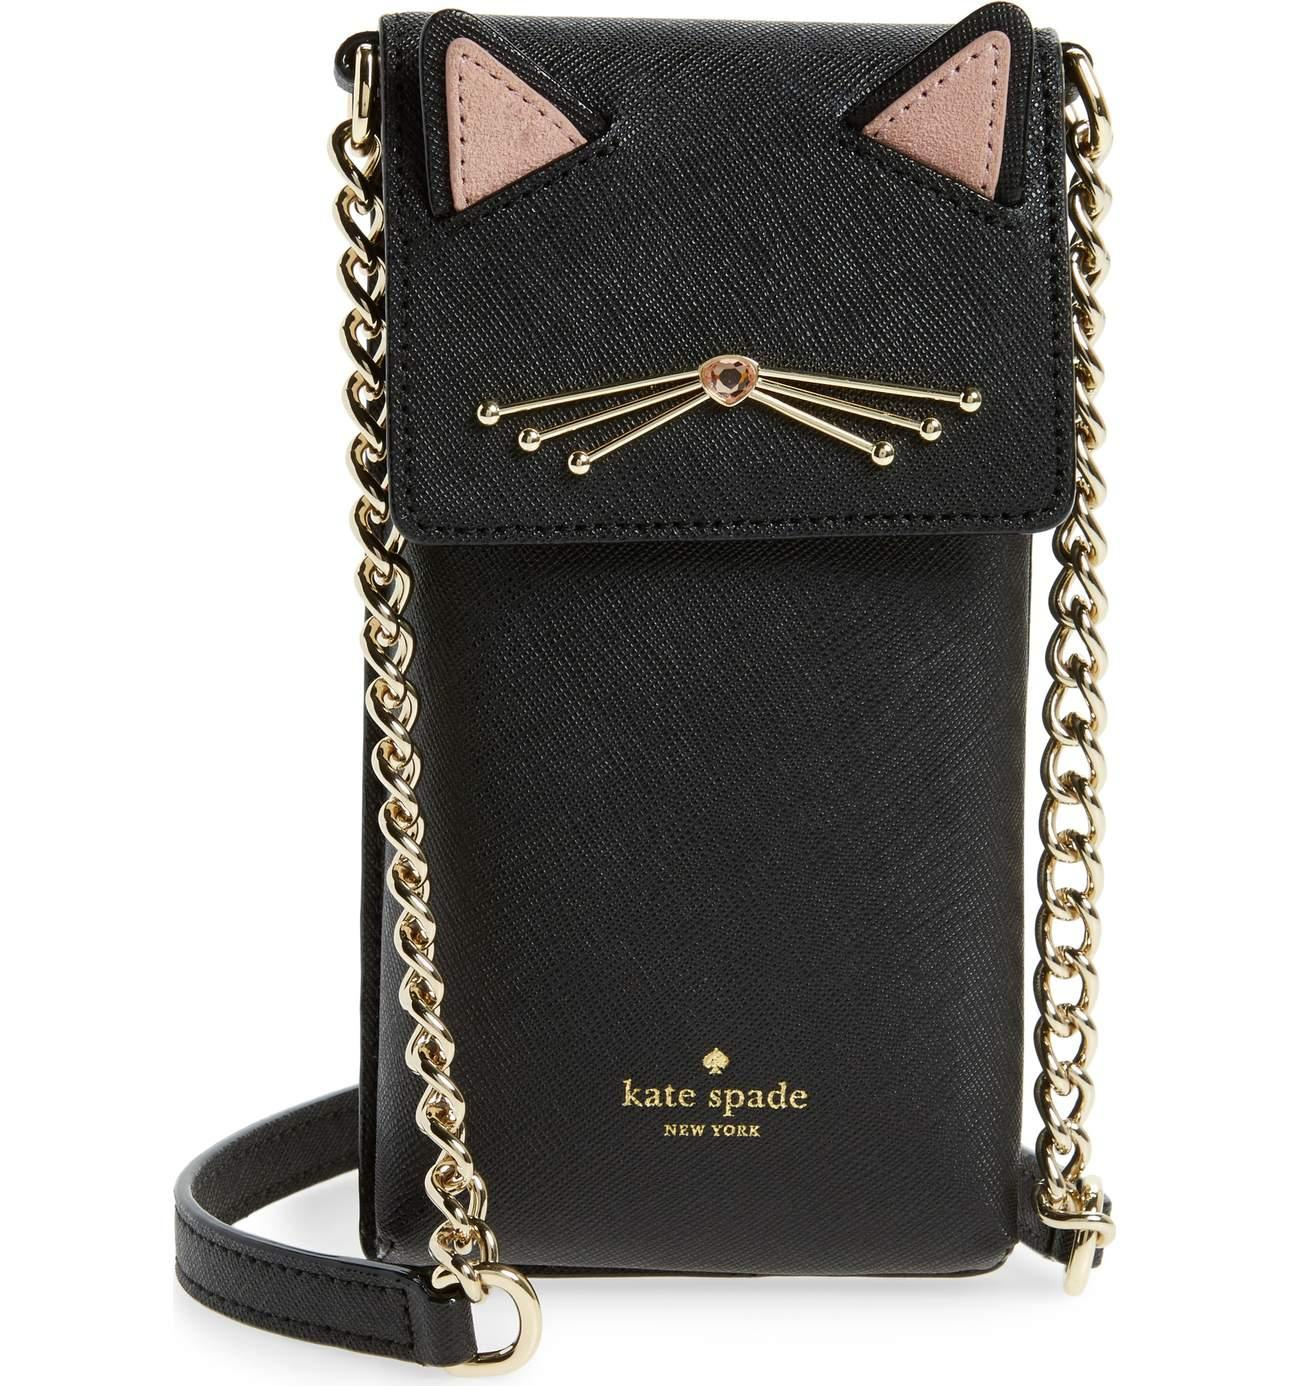 <p>Cat Smartphone Crossbody Bag - $128. This Kate Spade bag is to die for, SO CUTE!{&nbsp;} Perfect for a high school gal or dare I say the 'cat lady' in your hood? Either way, its darling.{&nbsp;} Cost: $128. For purchase at Nordstrom or Kate Spade. (Image: Nordstrom)</p><p></p>